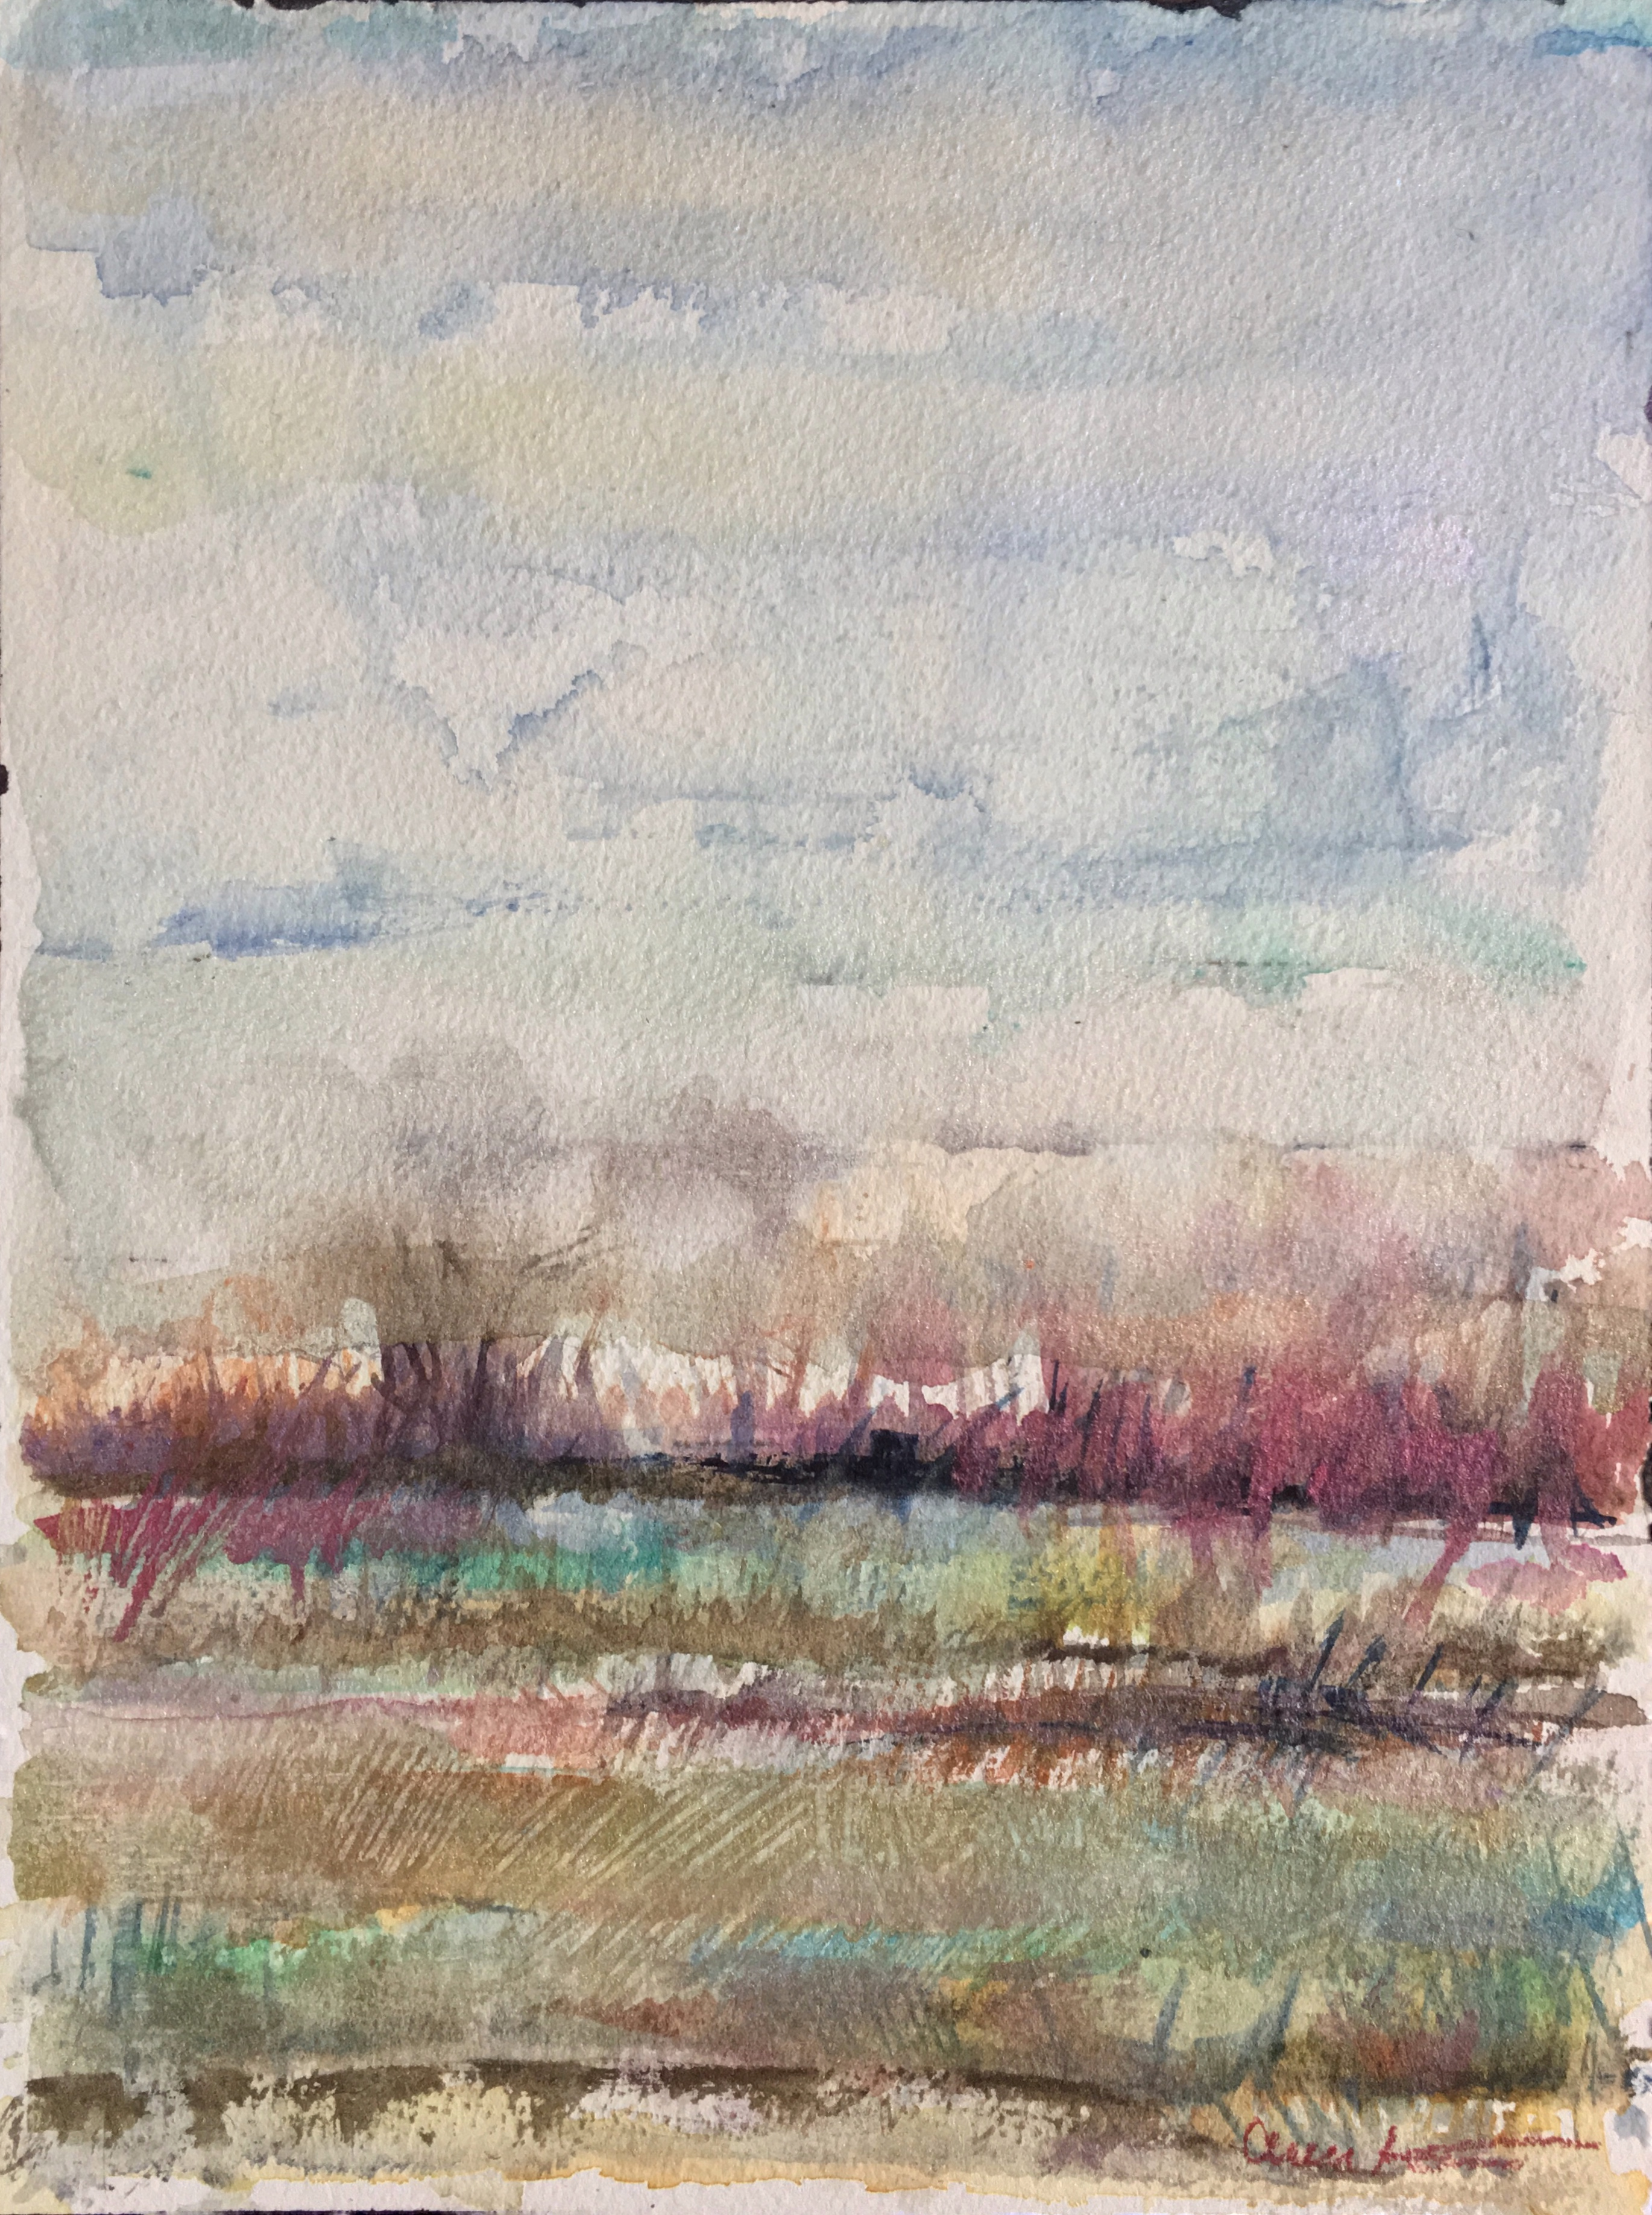 Floodplain by Ann Stretton